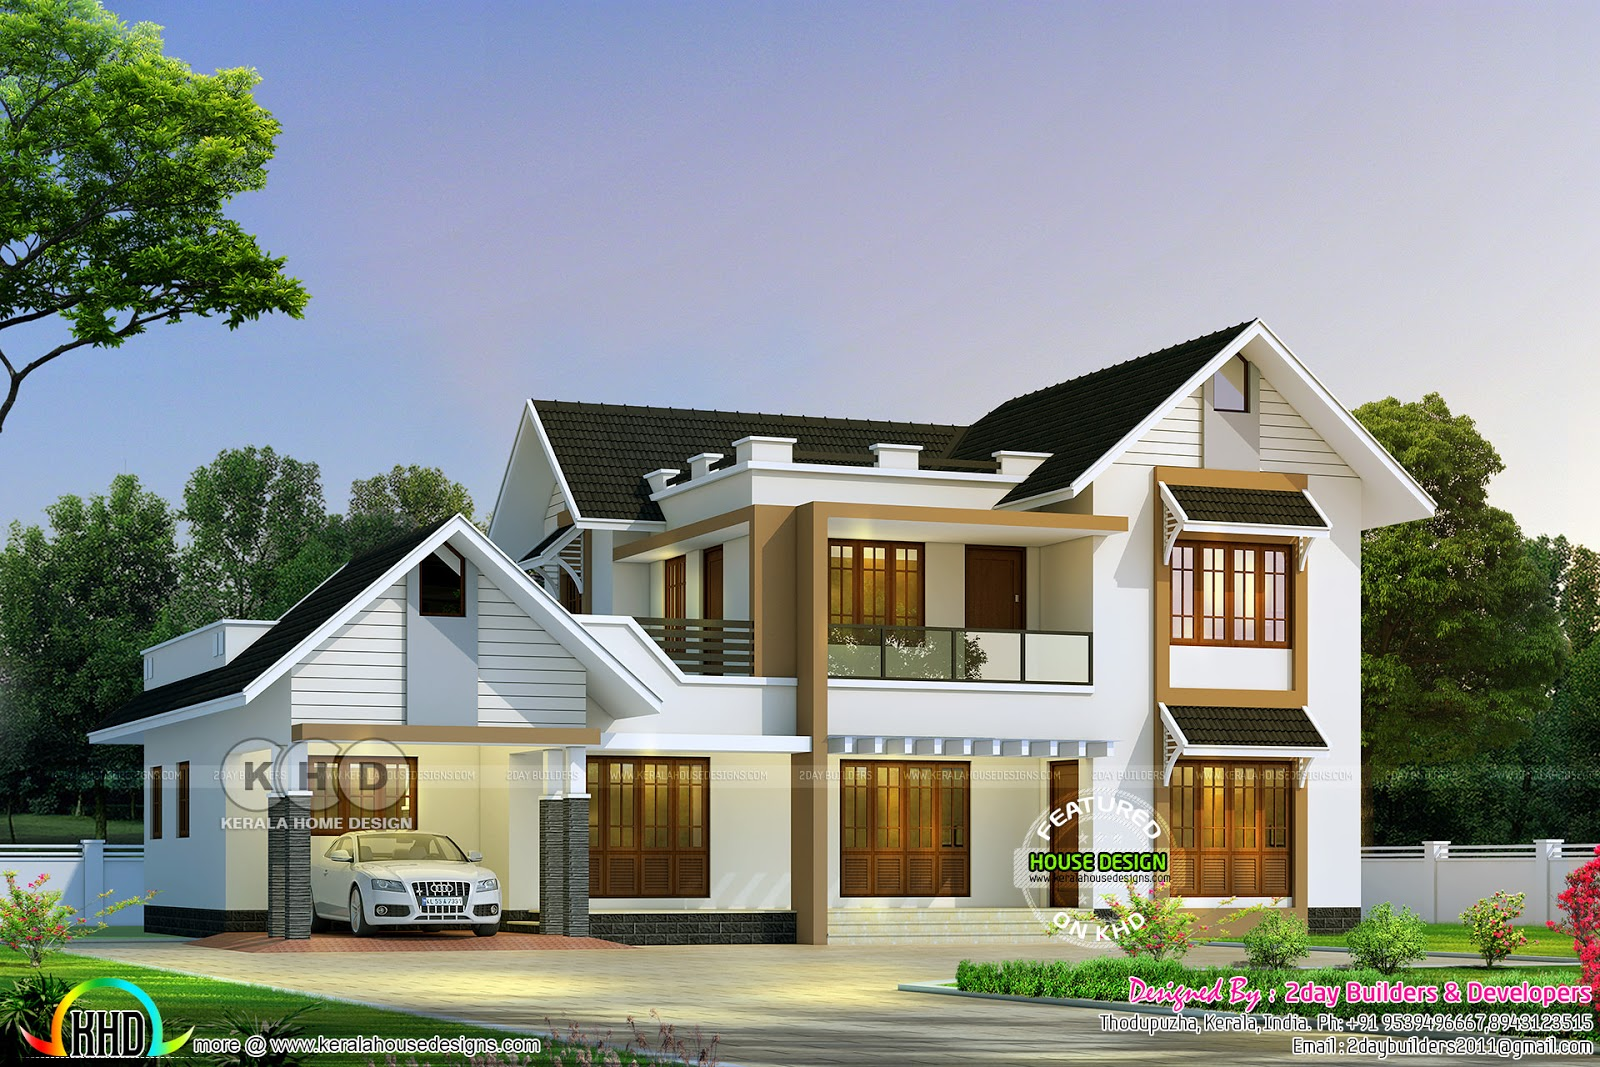 2017 kerala home design and floor plans for Home design images gallery